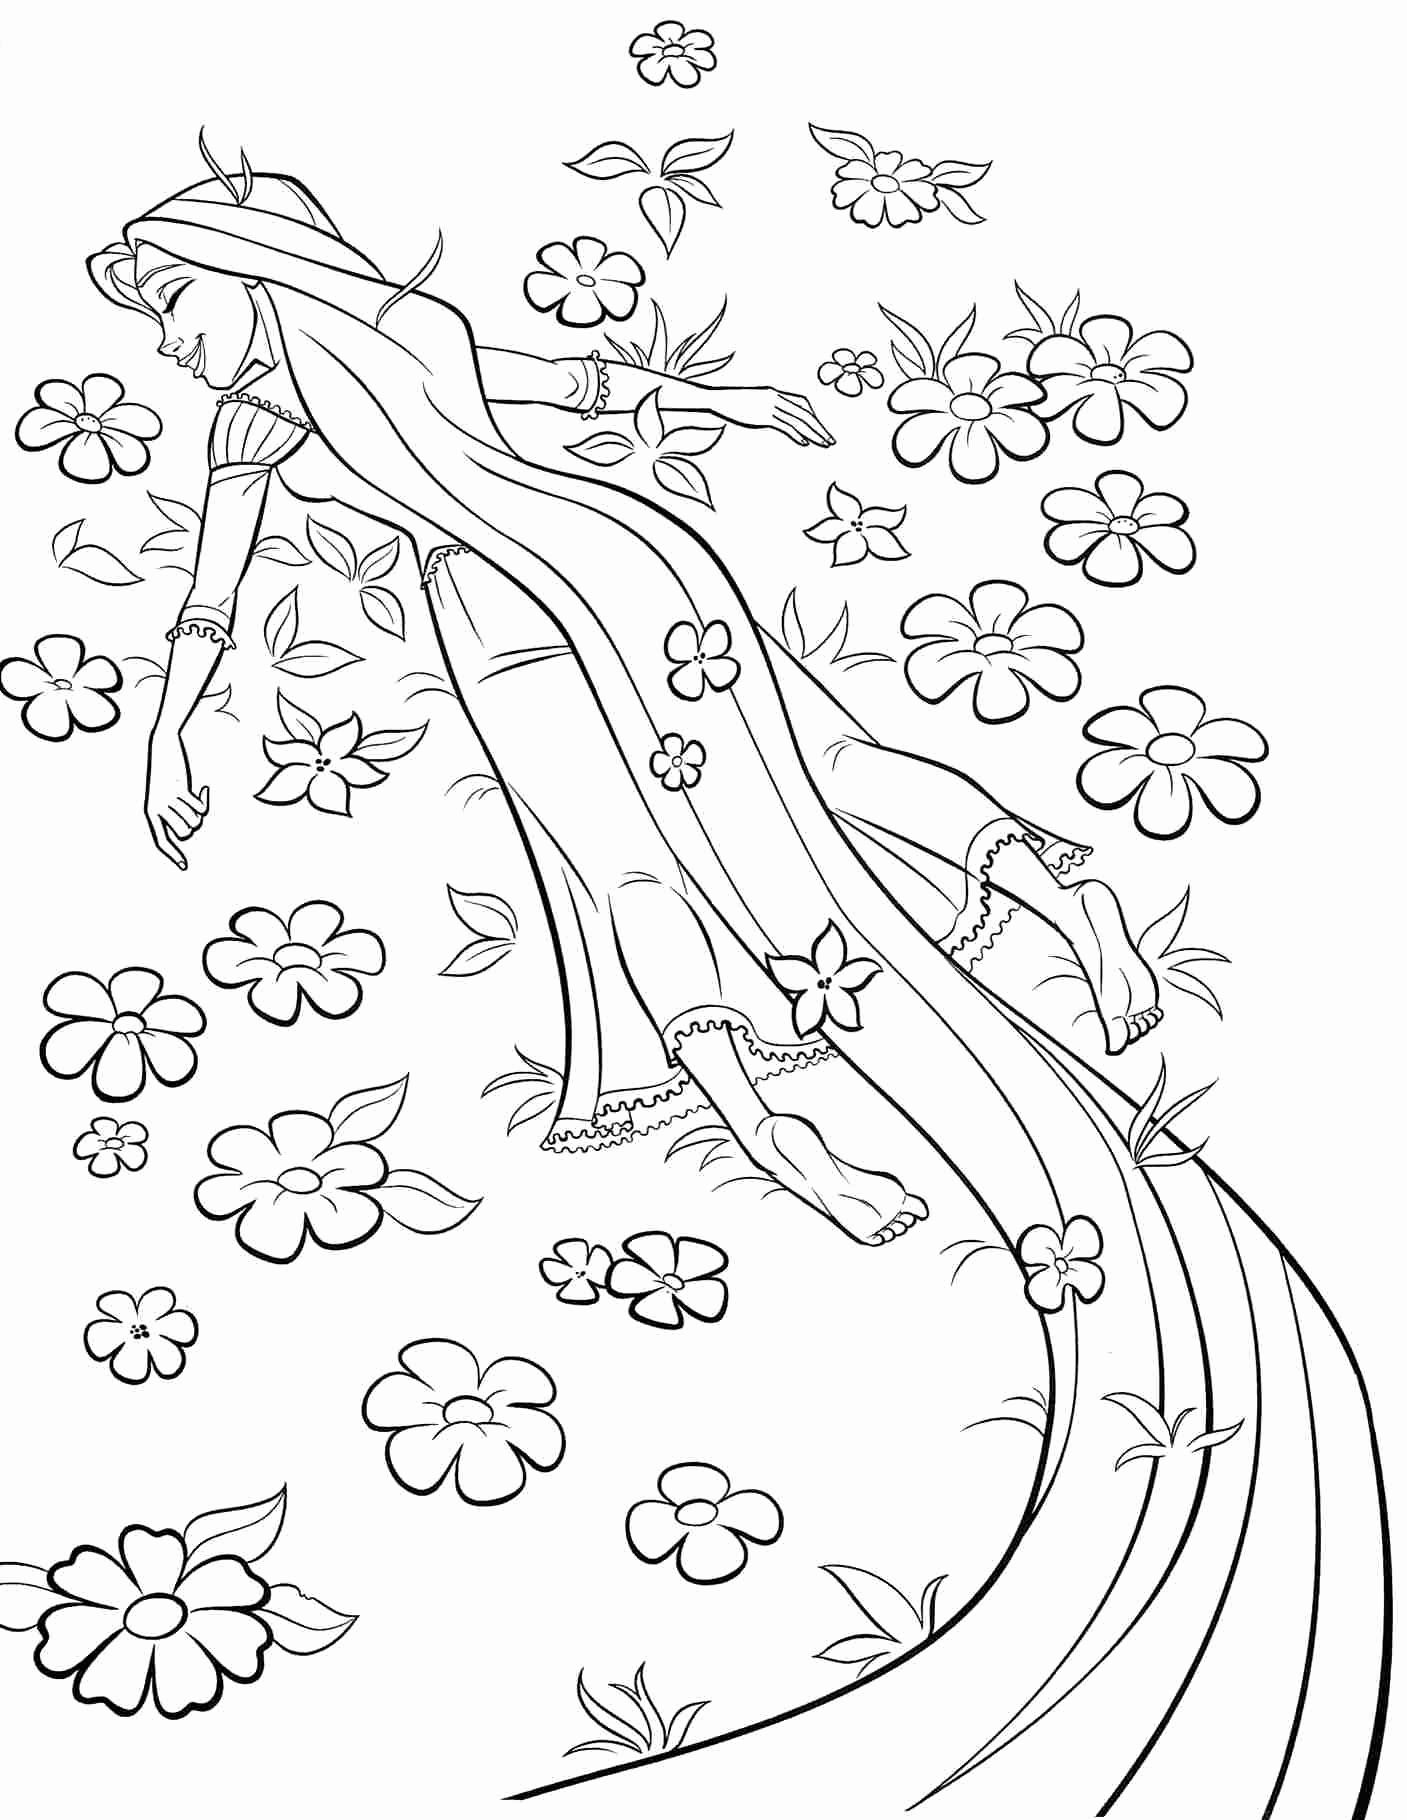 Coloring Pages For Kids Disney Tangeled In 2020 Tangled Coloring Pages Rapunzel Coloring Pages Princess Coloring Pages